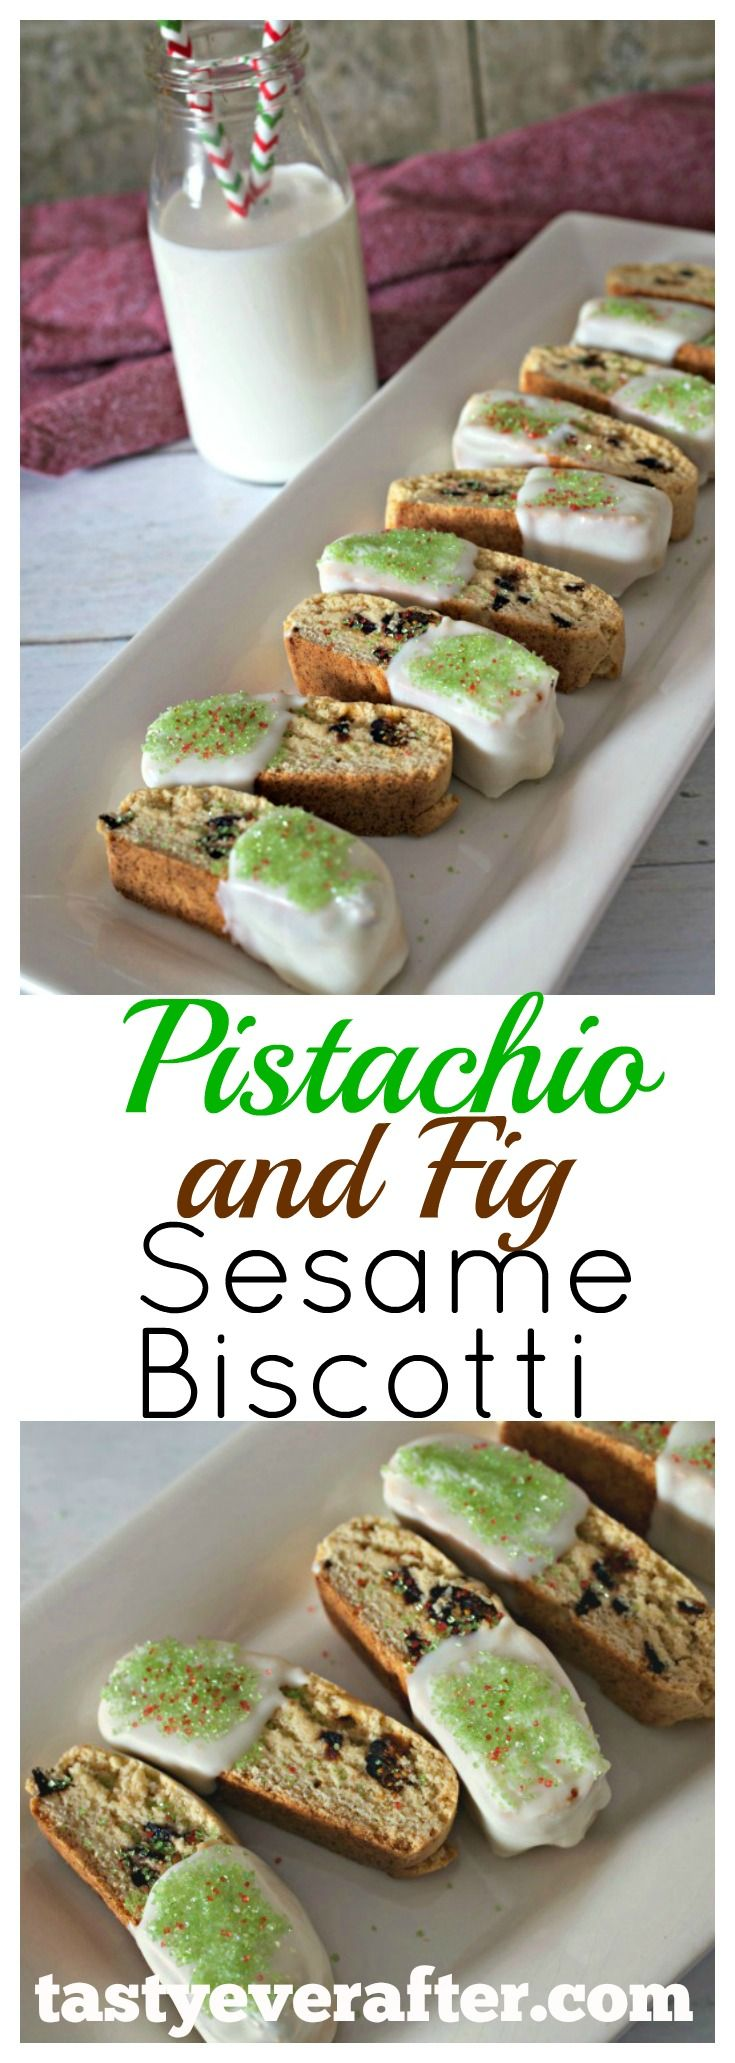 a modern spin on the classic Italian twice-baked cookie that's flavored with sesame paste, a hint of cardamon, crunchy pistachios, chewy dried figs, and coated in white chocolate.